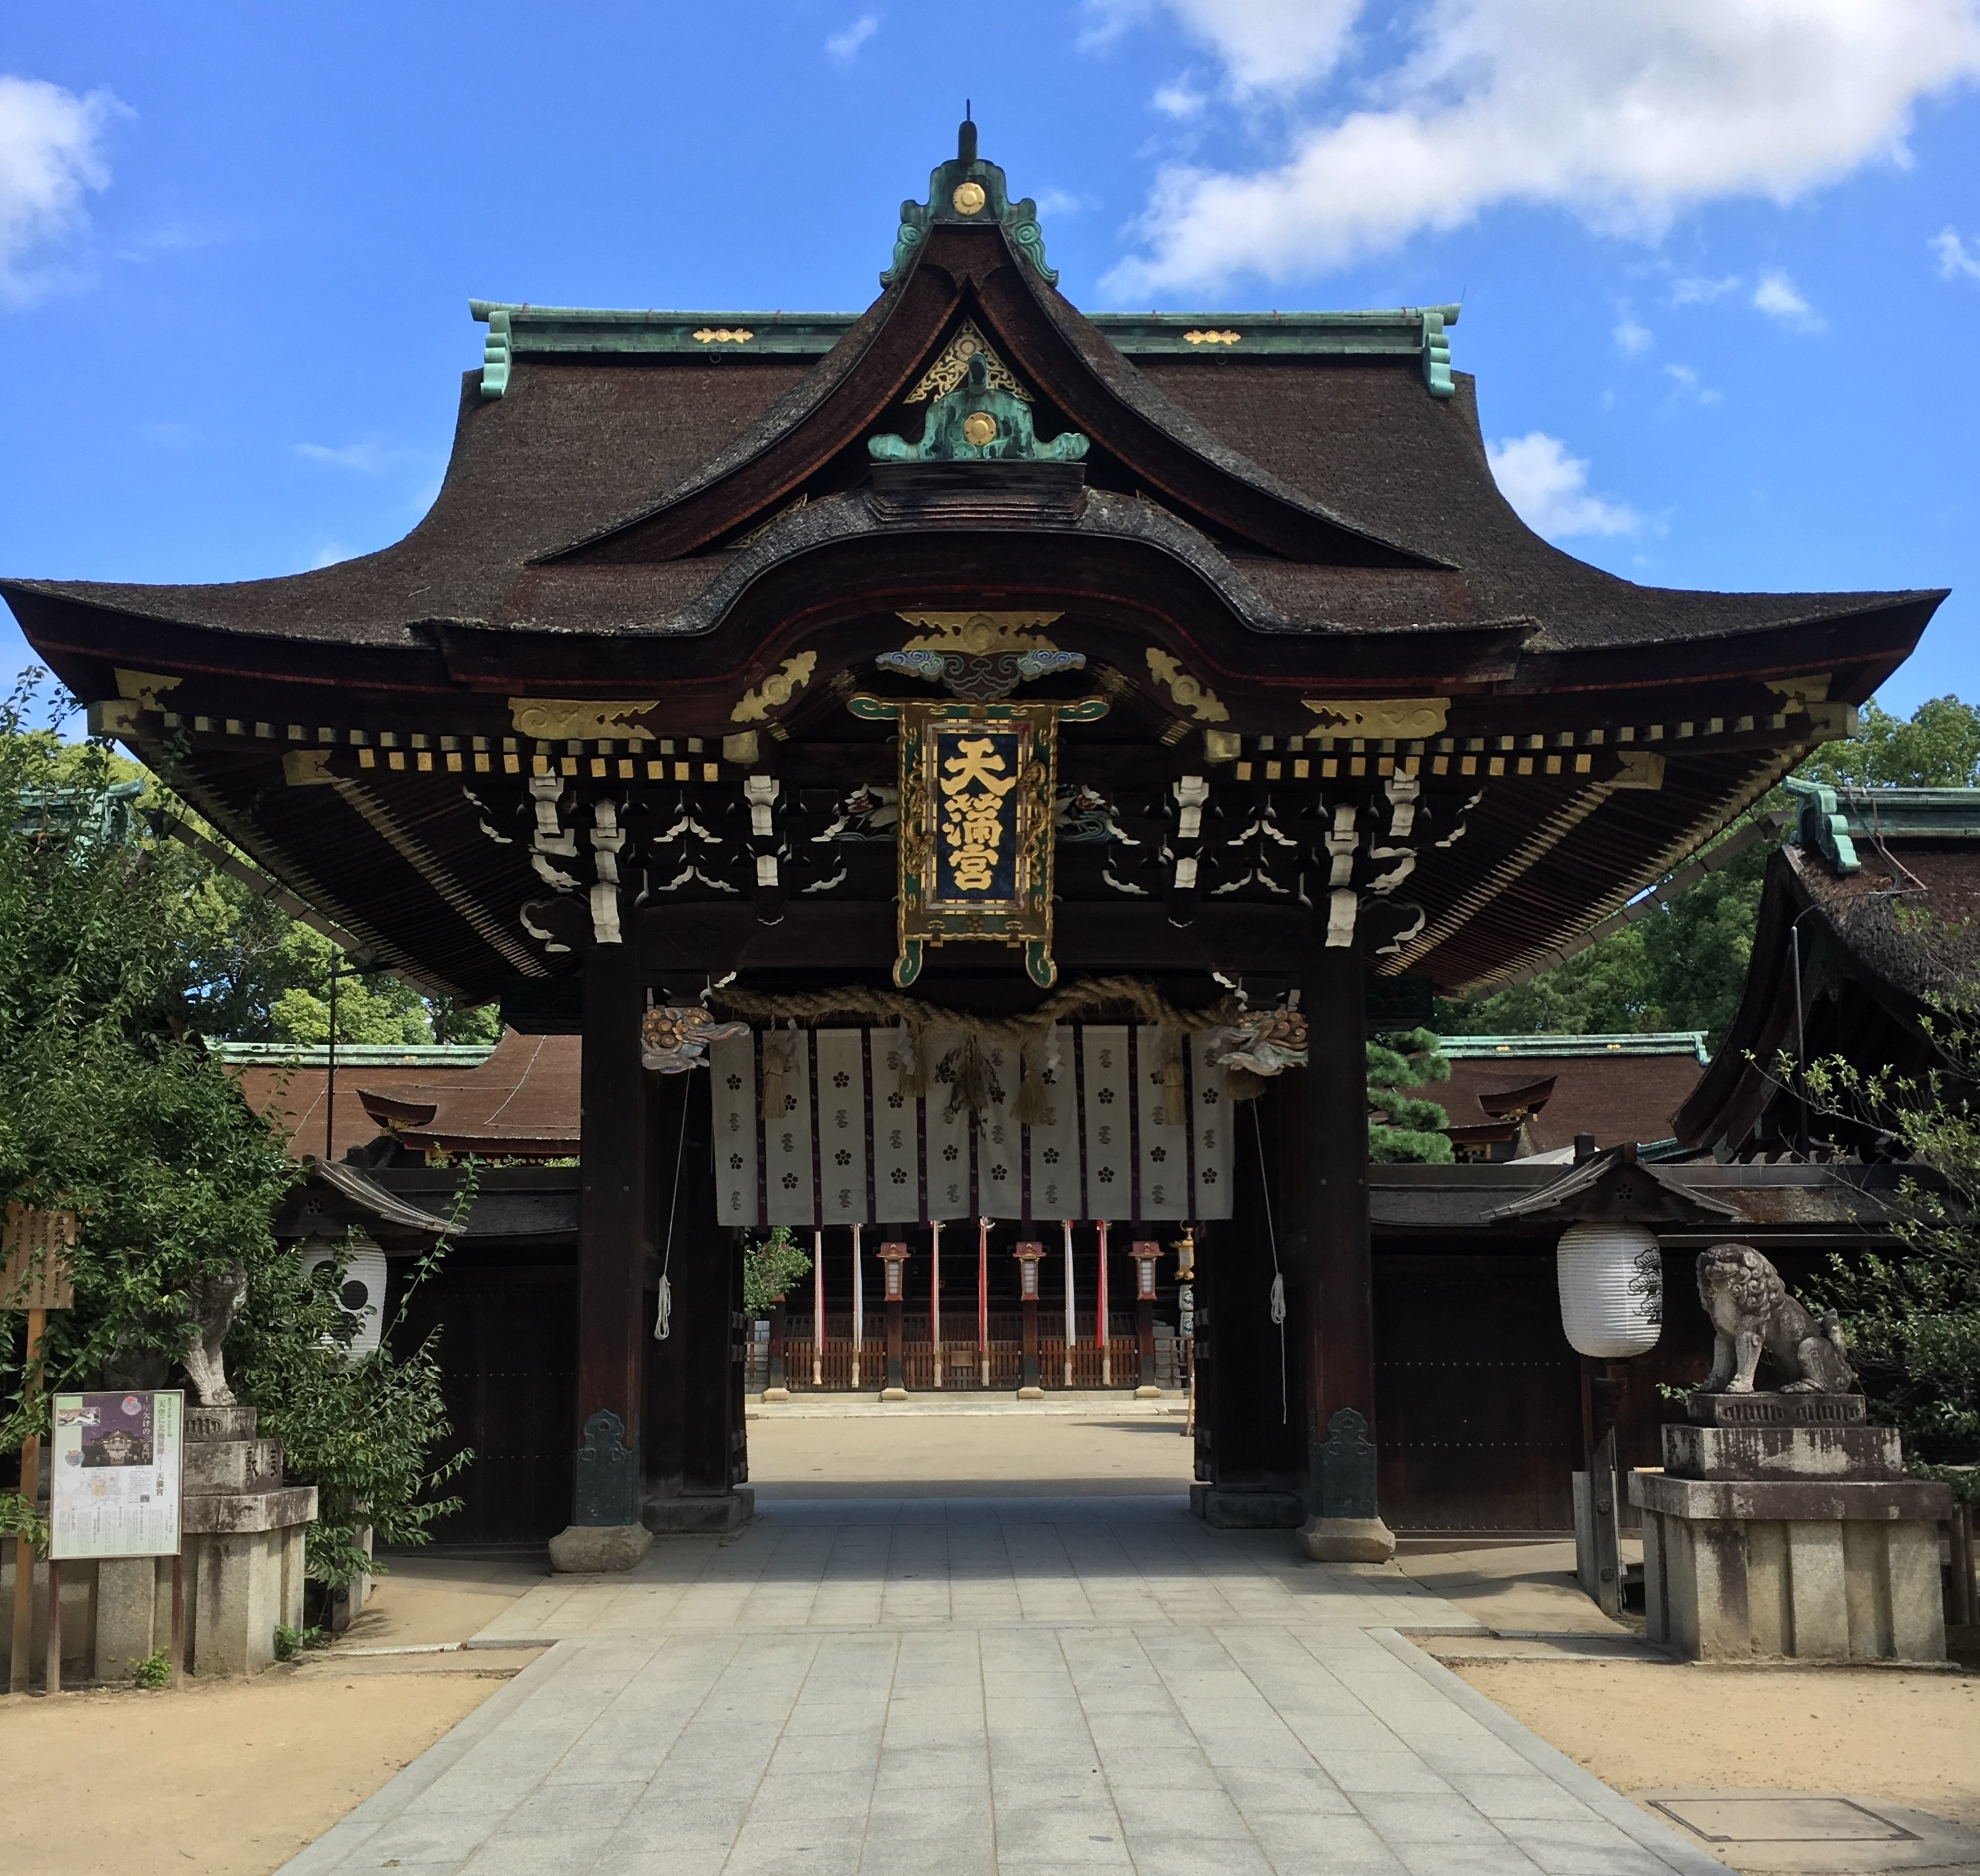 iconic gate at kitano tenmangu shrine with large name plate in gold lettering